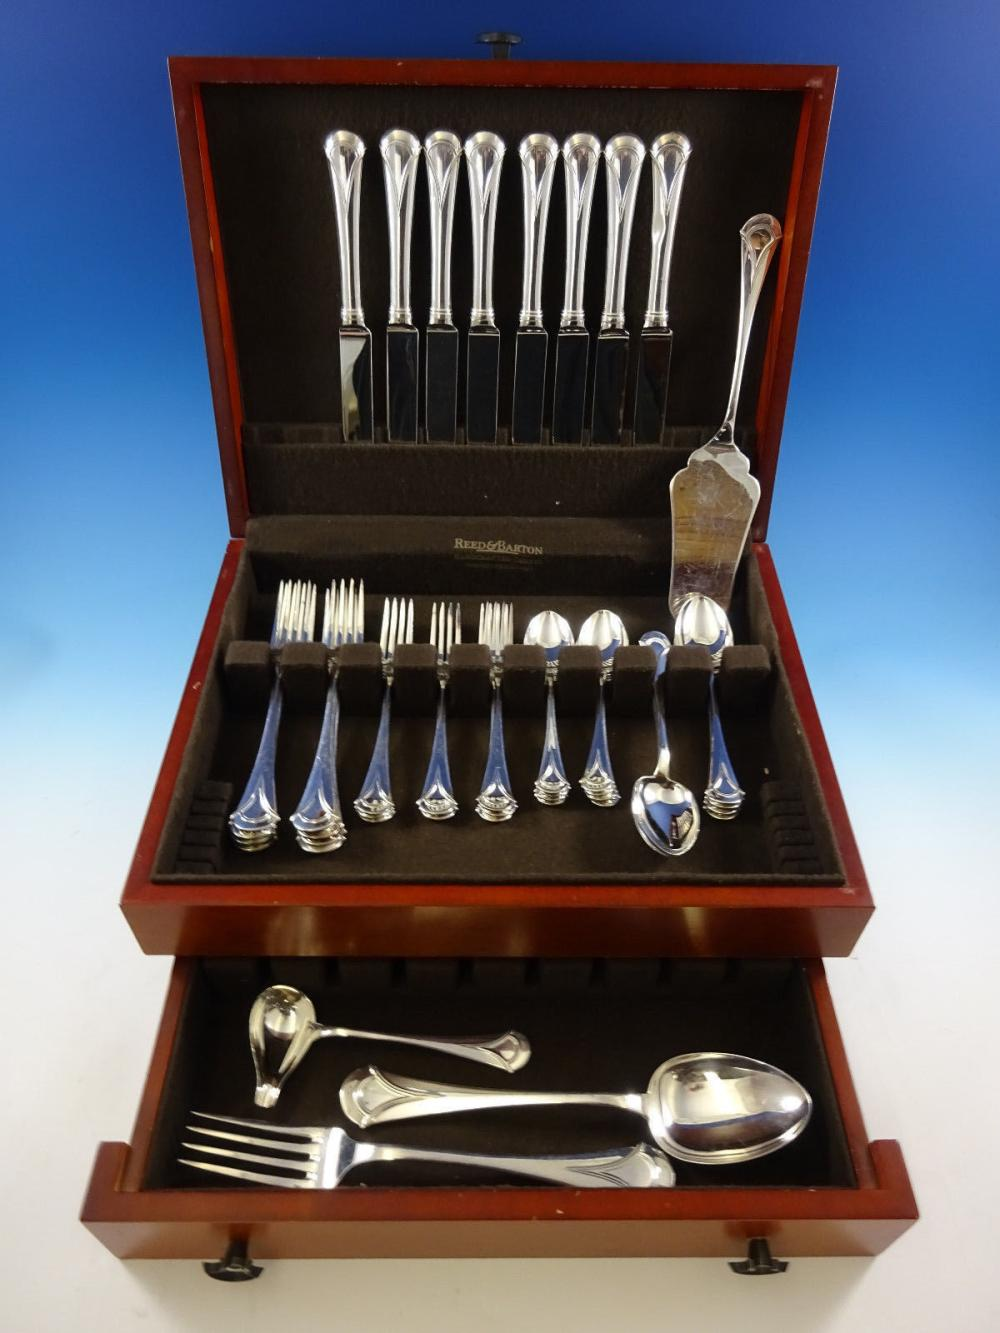 Lui by Bellotto Italy Sterling Silver Flatware Set 8 Service 44 PC Dinner  Modern - Antique Cupboard – Browse & Buy Art Online Invaluable